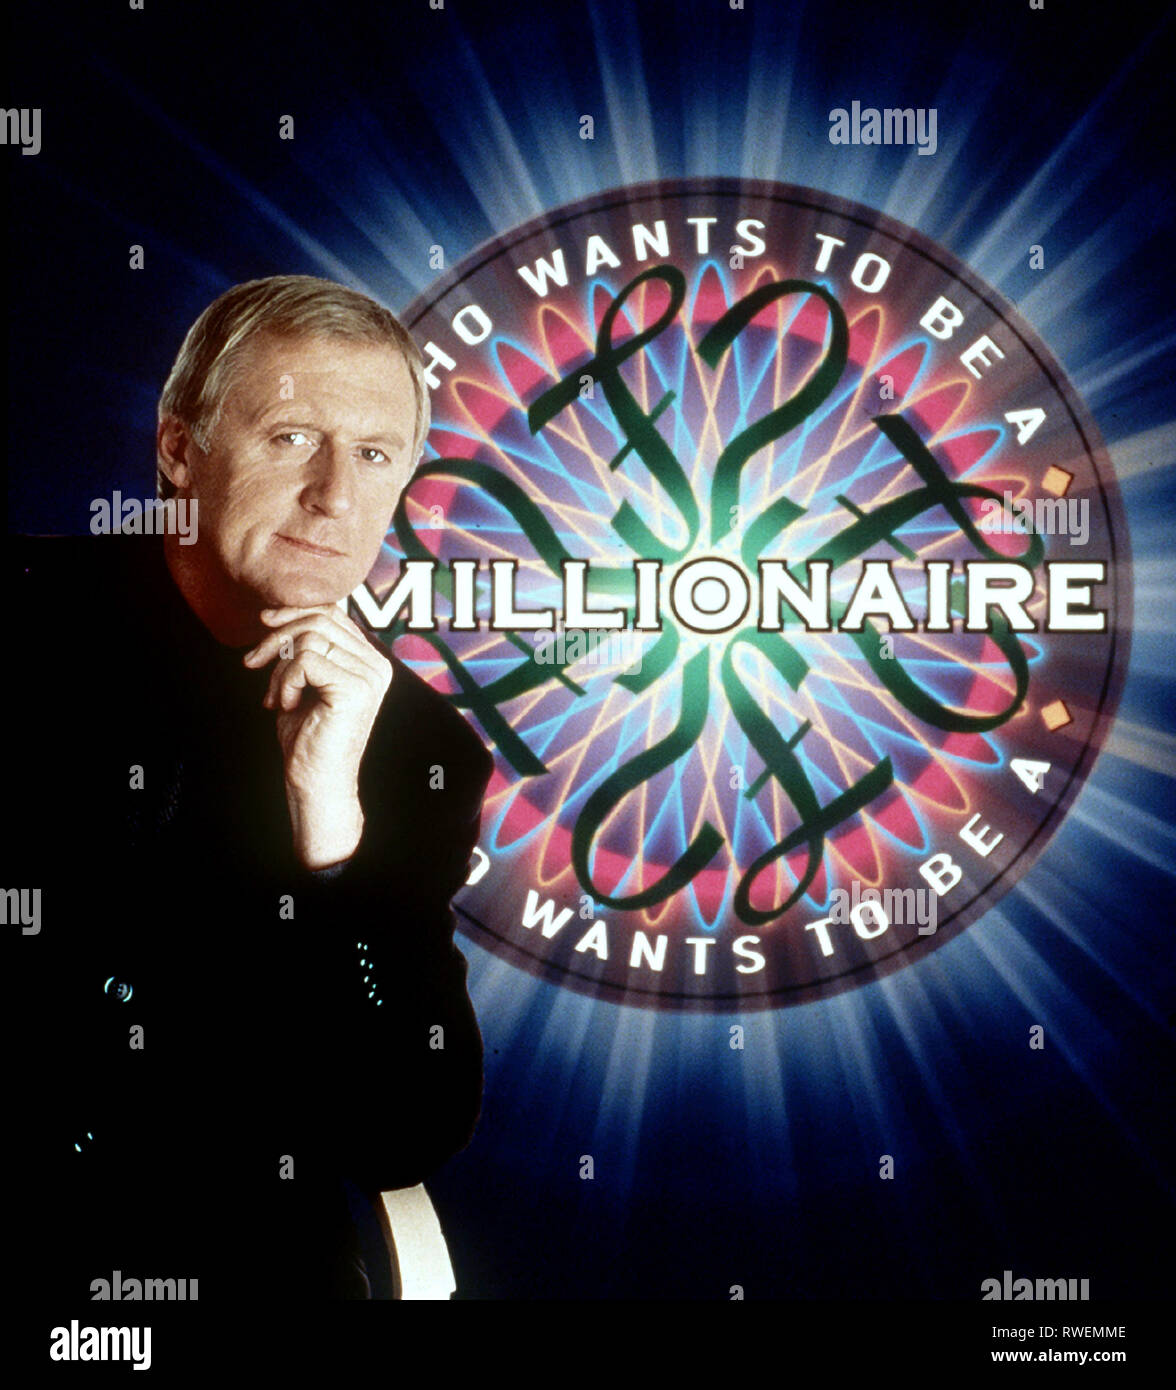 Who Wants To Be A Millionaire Stock Photos & Who Wants To